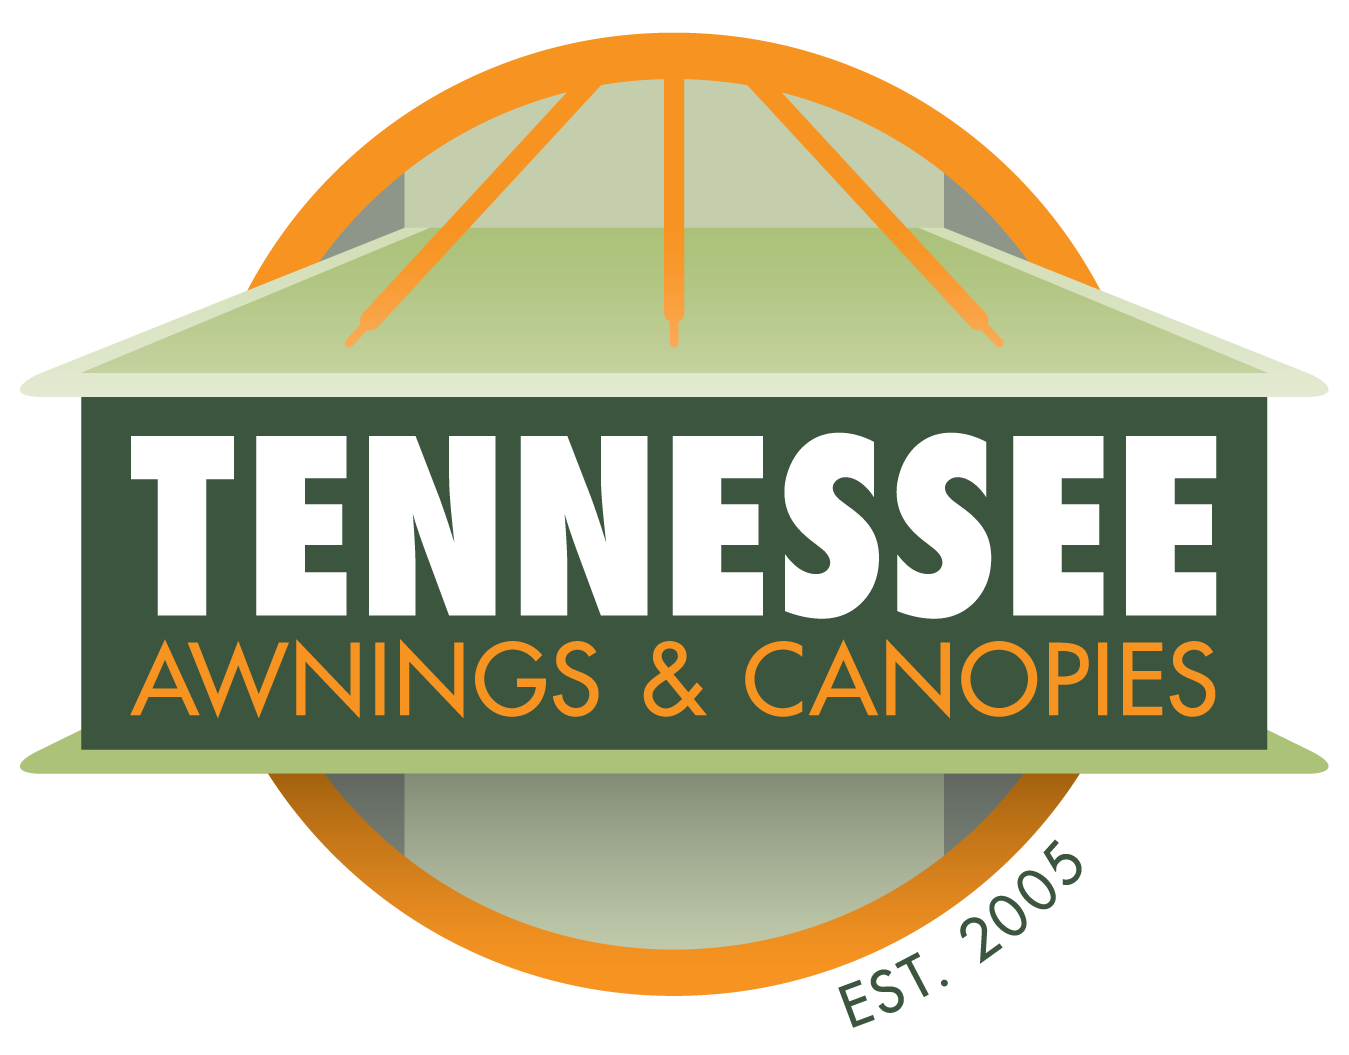 Tennessee Awnings & Canopies logo